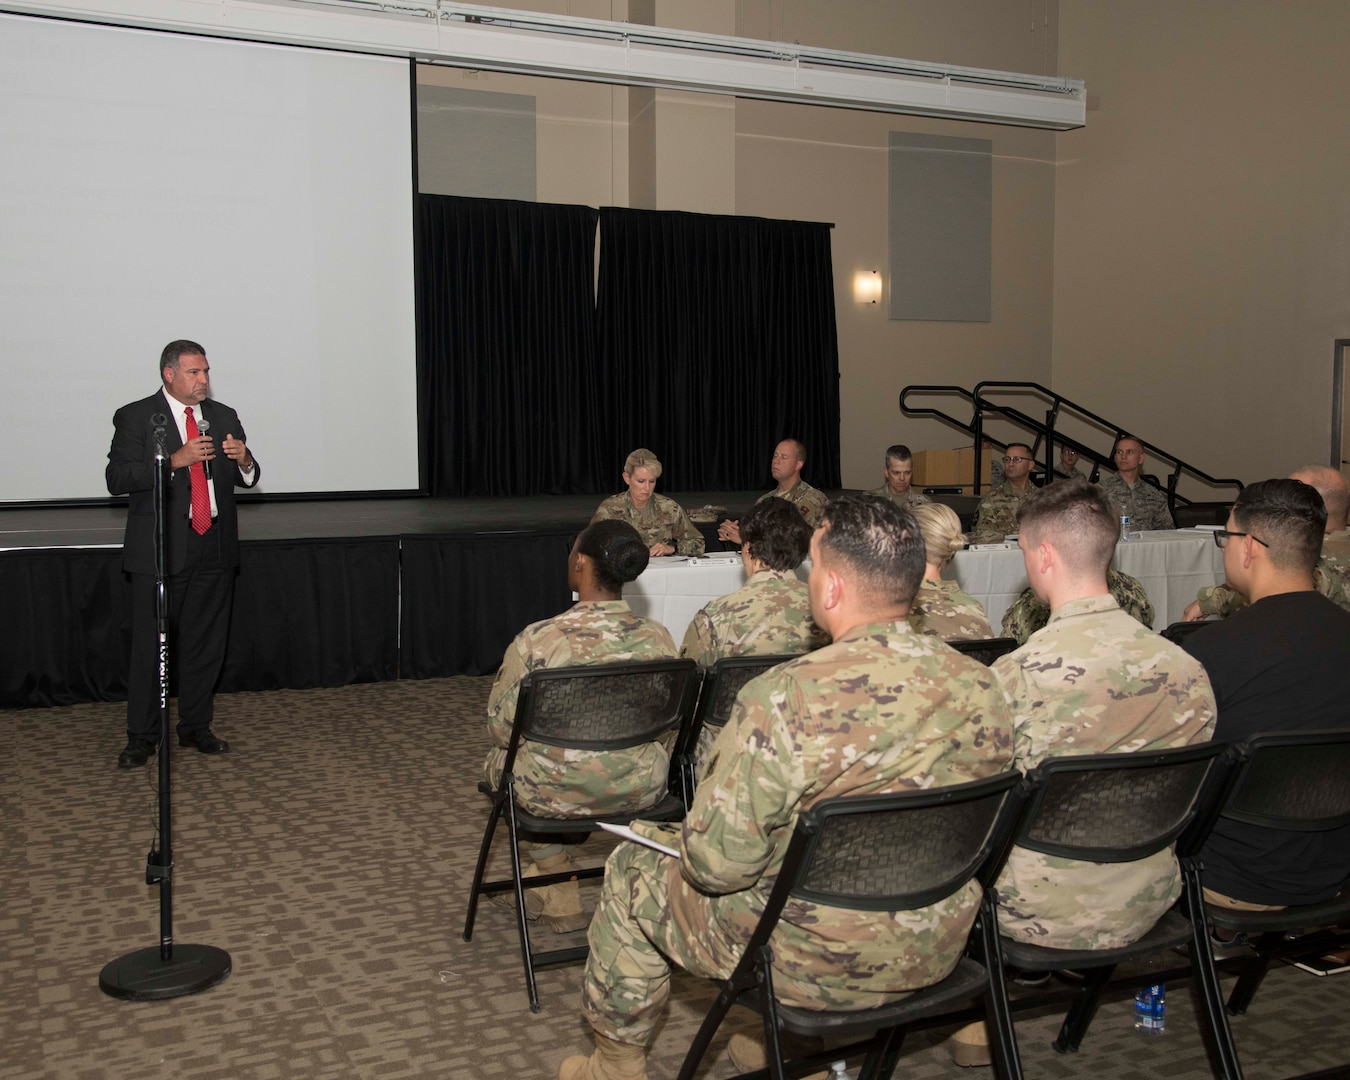 Richard Trevino, the 502nd Civil Engineering Group director, discusses the steps being taken to combat mold with residents of JBSA-Fort Sam Houston's barracks, ships, and dorms during a gathering on Aug. 13. The meeting offered service members an opportunity to directly address issues about their housing with senior leadership. (Photo by Tristin English)